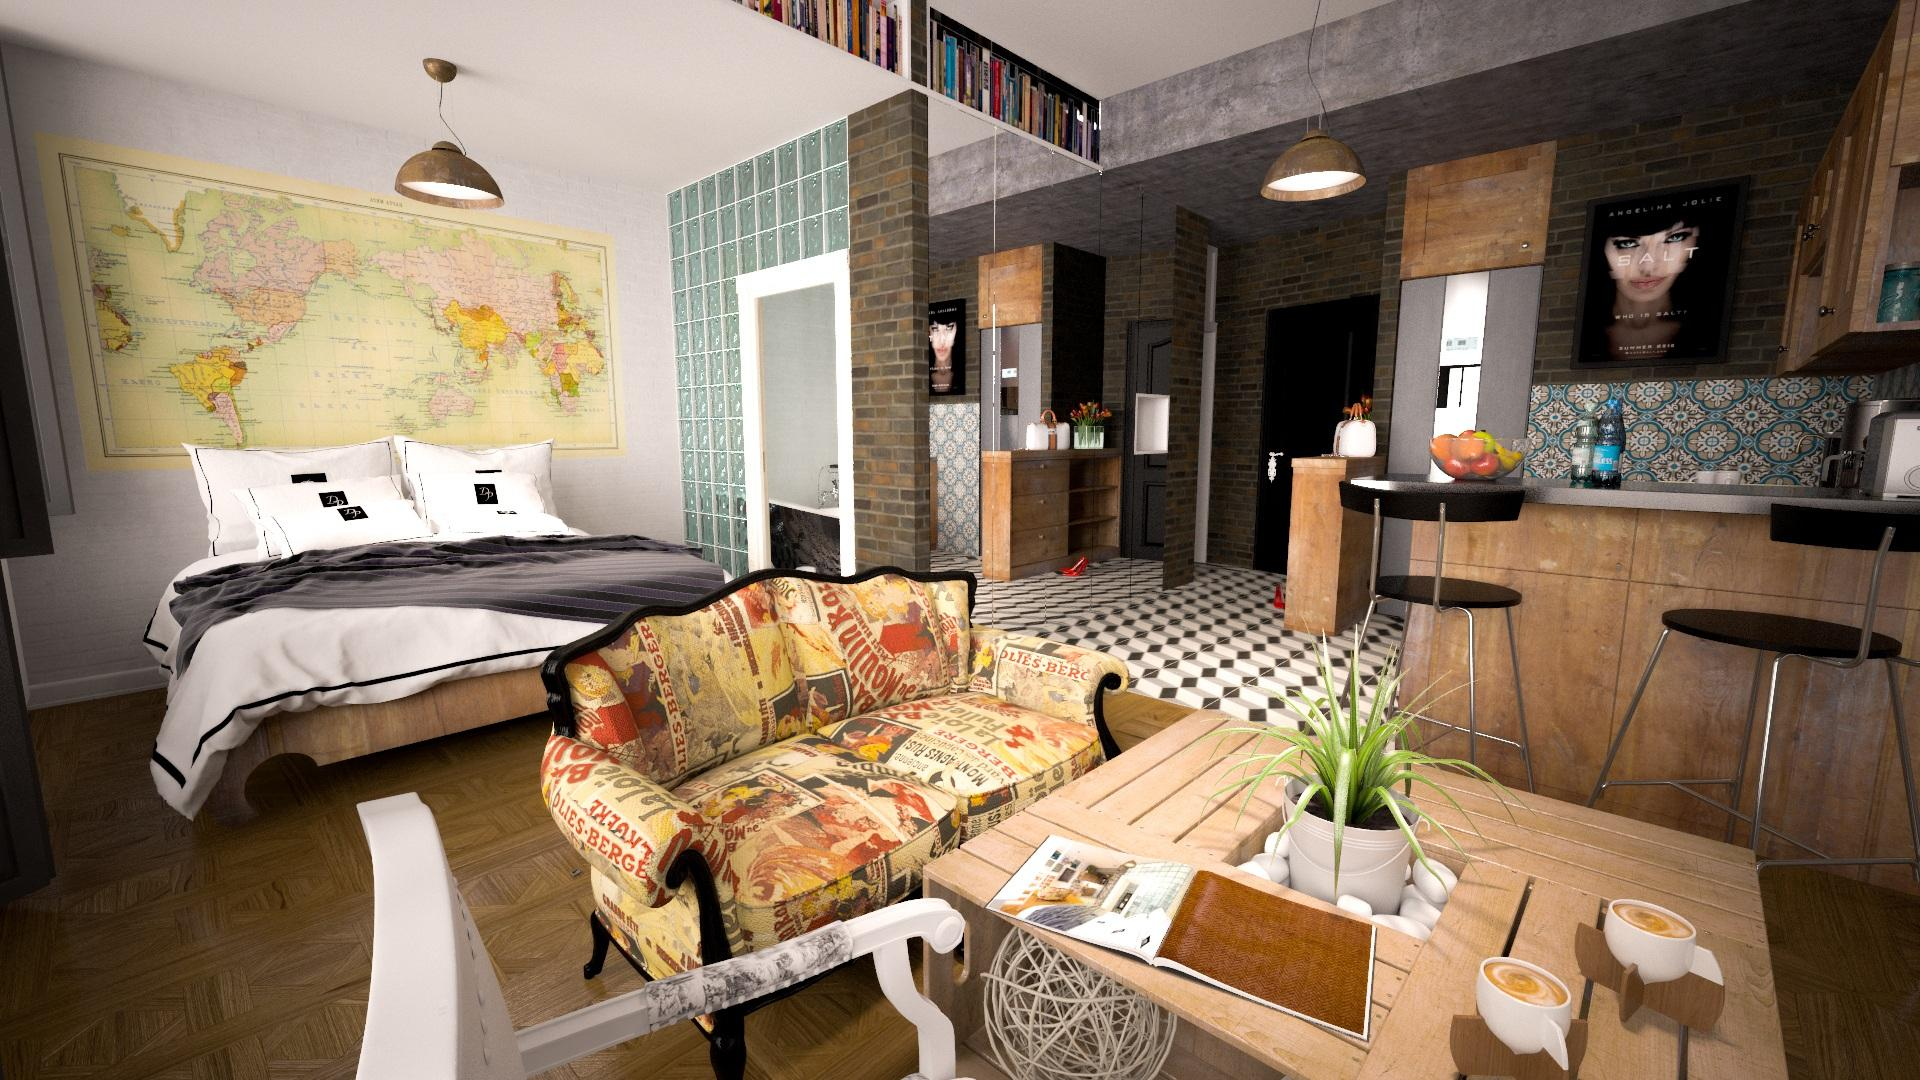 travels inspired apartment - Renovating a Living Room? Experts Share Their Secrets